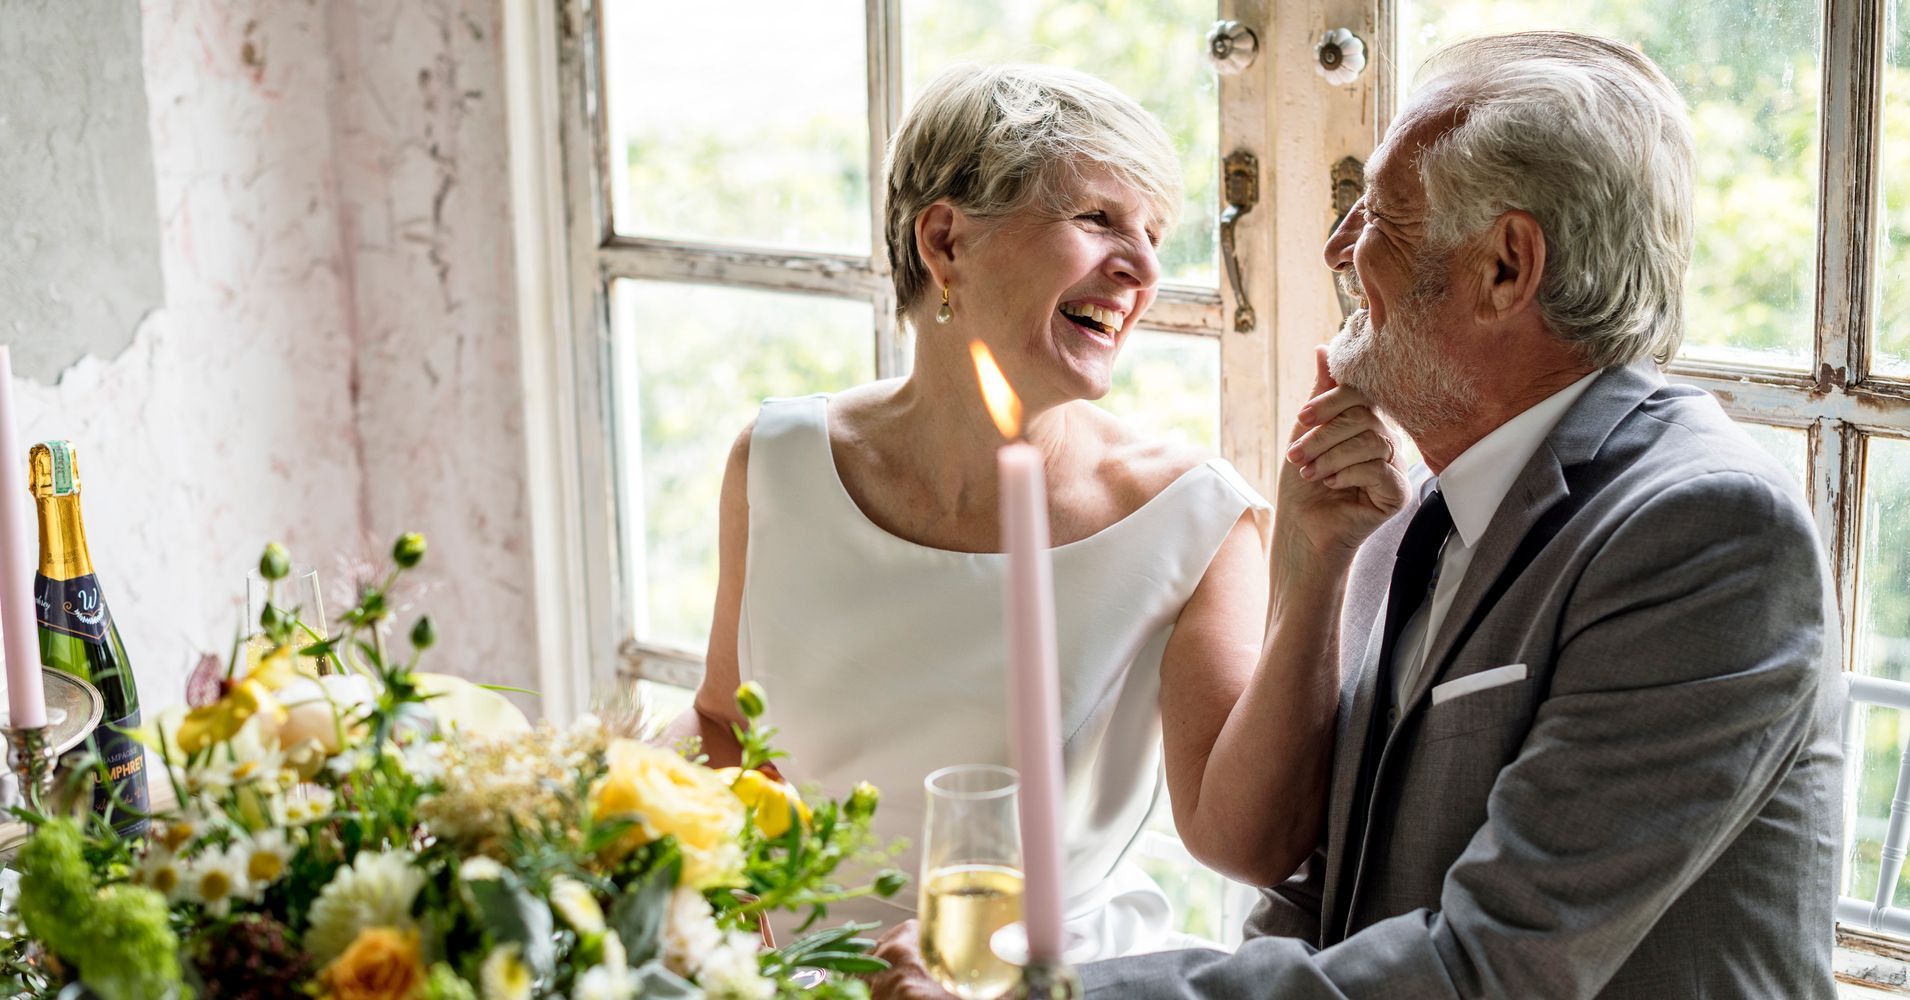 Wedding Gift Ideas For Older Couples Second Marriage  27 Wedding Gifts For Older Couples Marrying The Second